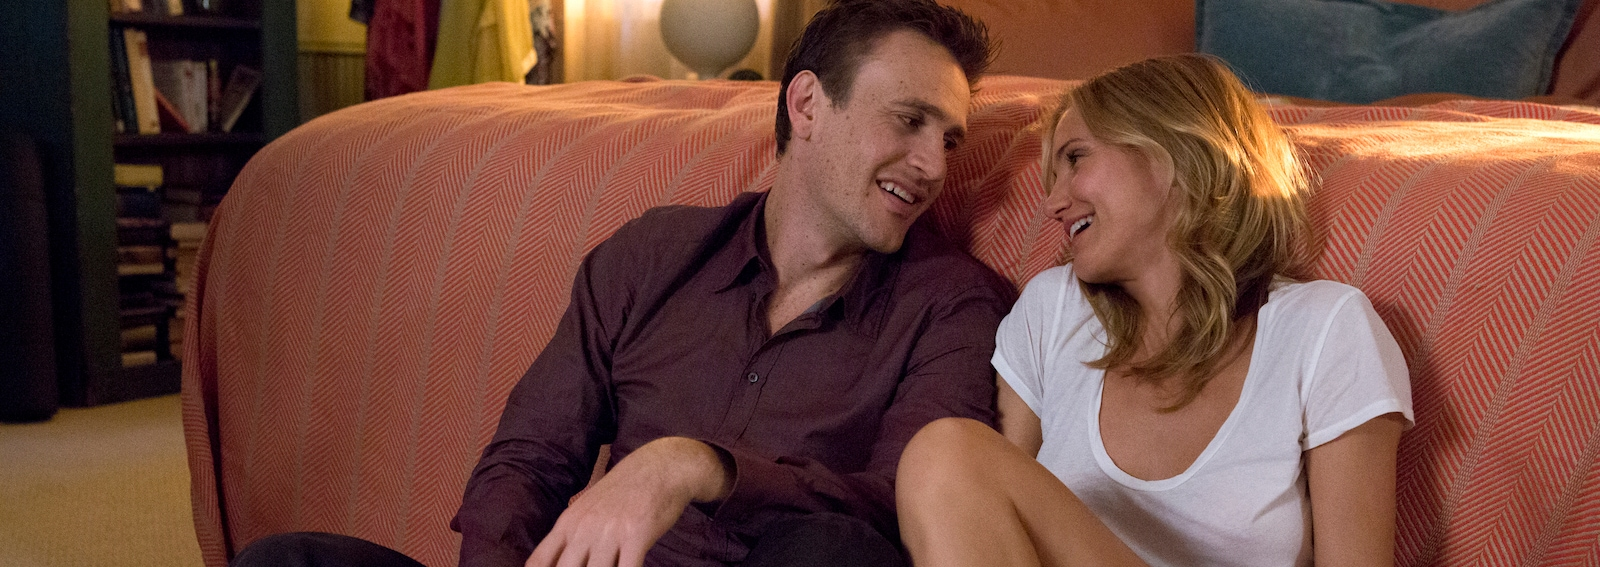 Cameron Diaz;Jason Segel